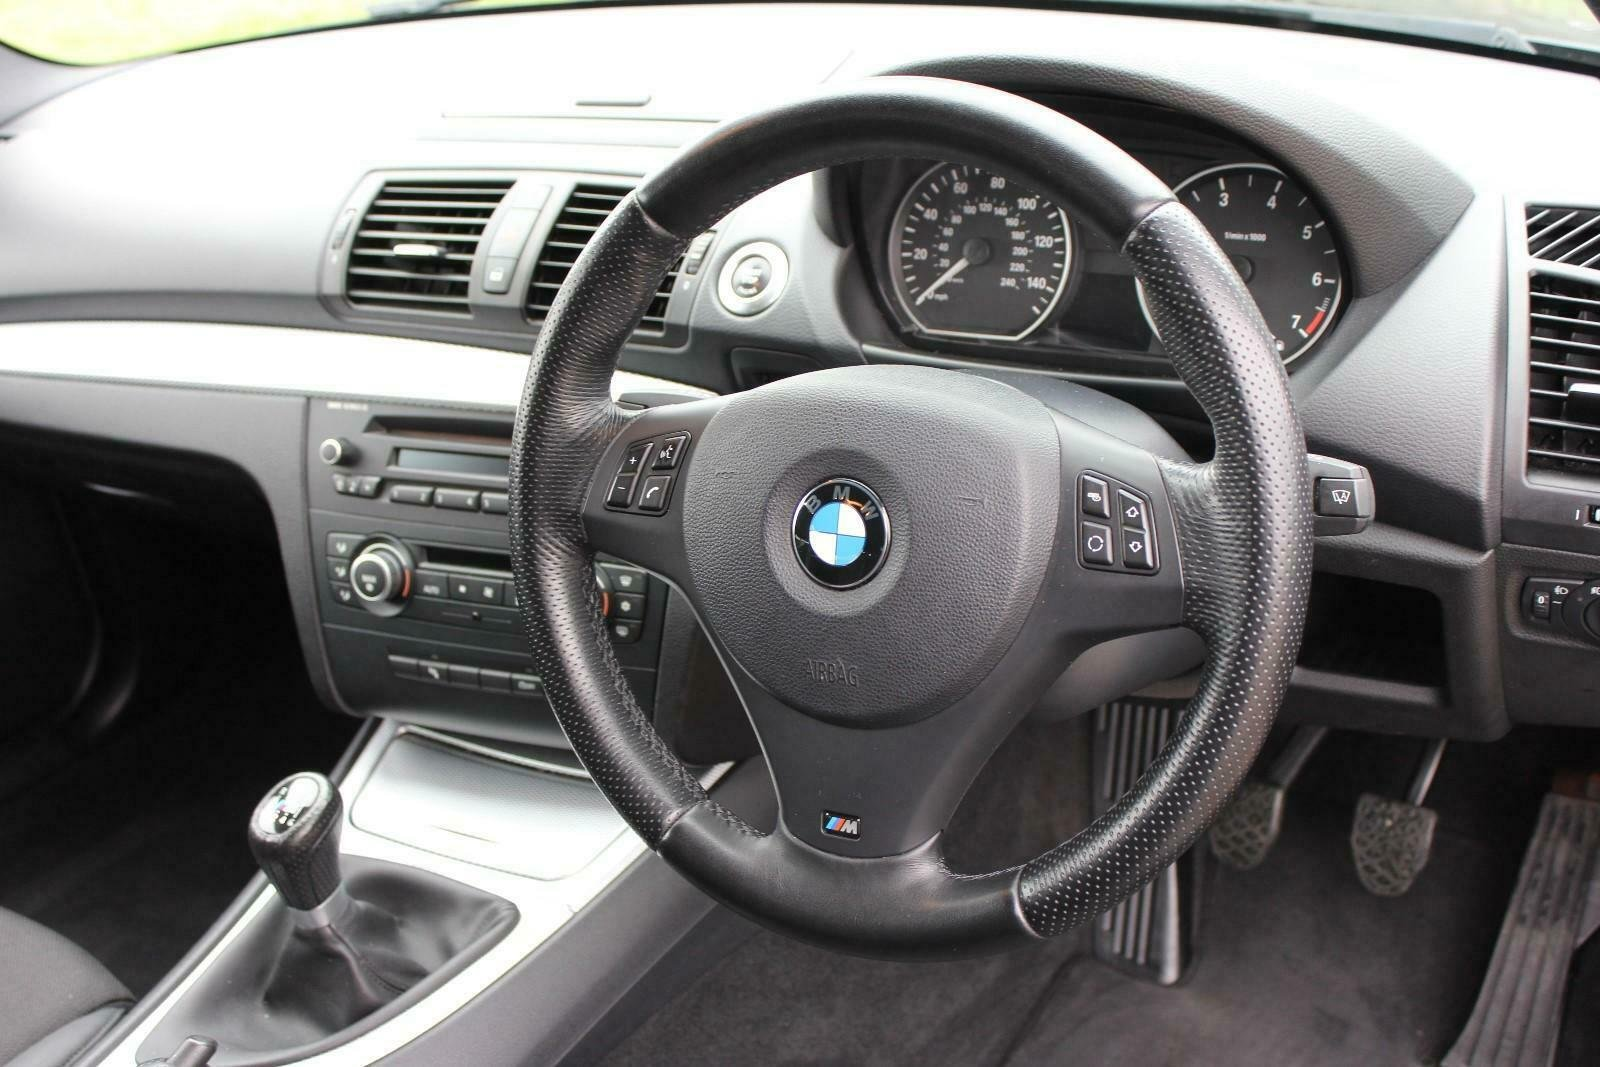 2010 BMW 1 Series 2.0 116i M Sport Hatchback 3 door Coupe  For Sale (picture 4 of 6)